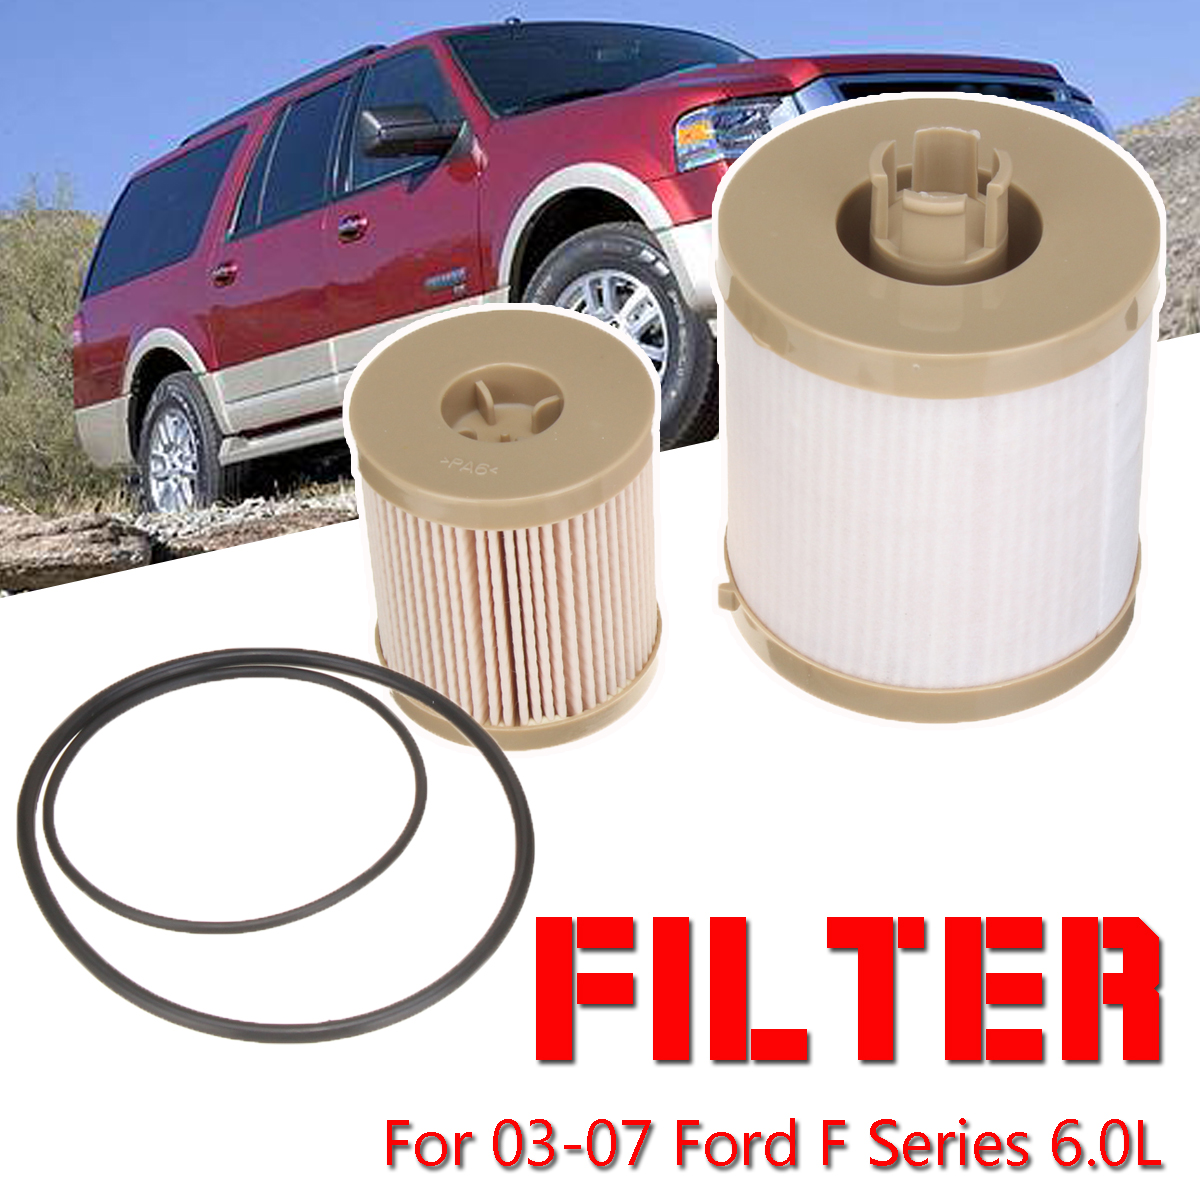 hight resolution of automobile oil filters petrol gas gasoline liquid fuel filters car oil filter replacement for ford 2003